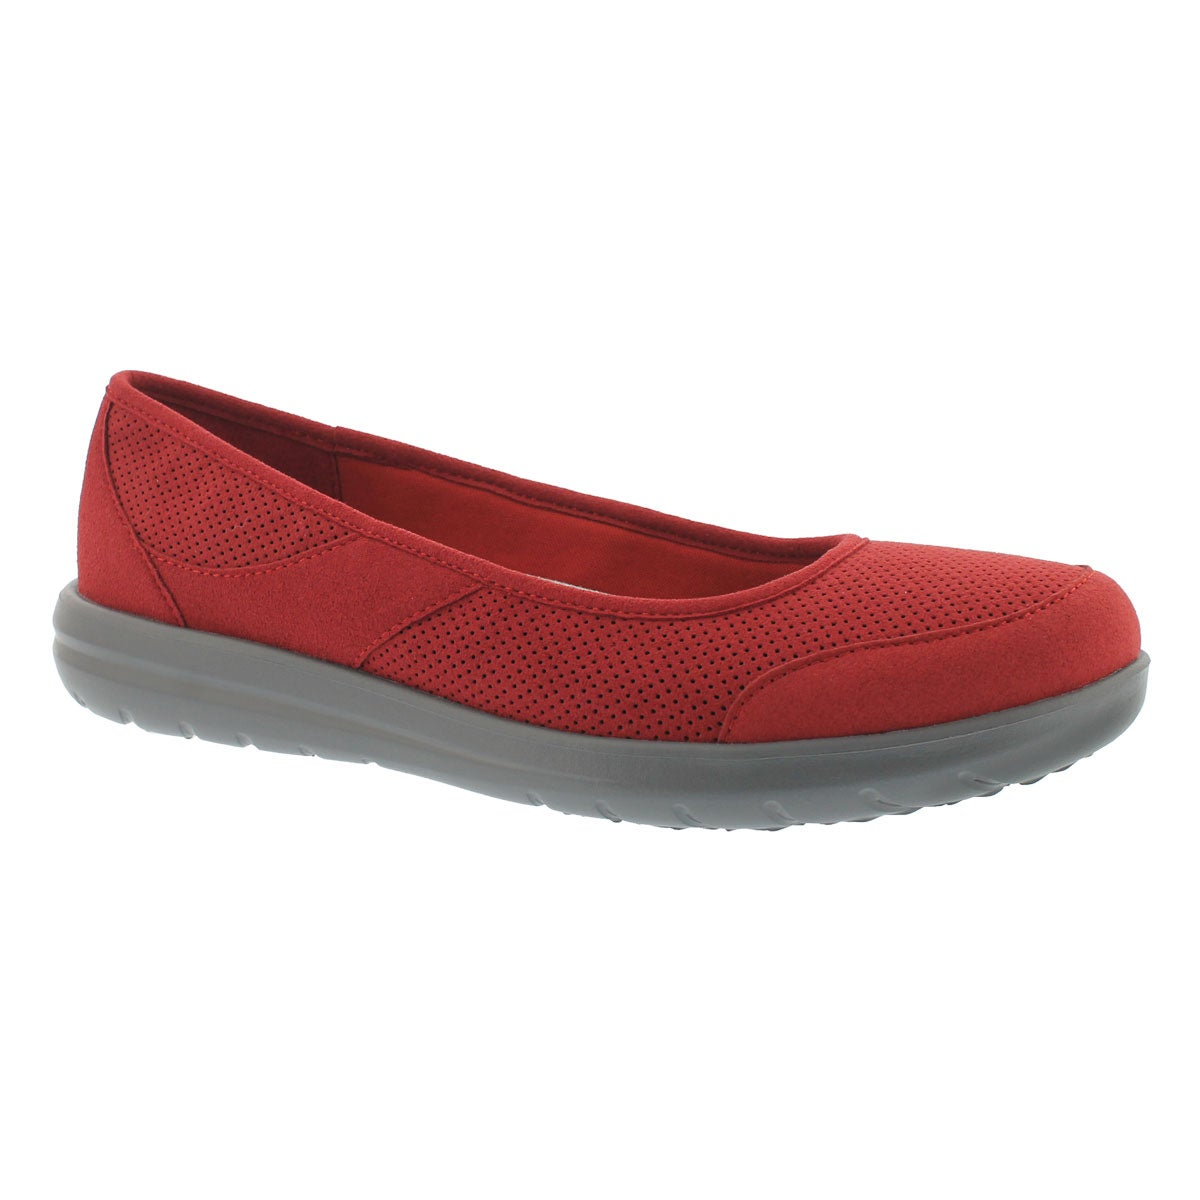 Women's JOCOLIN MYLA red perforated casual flats